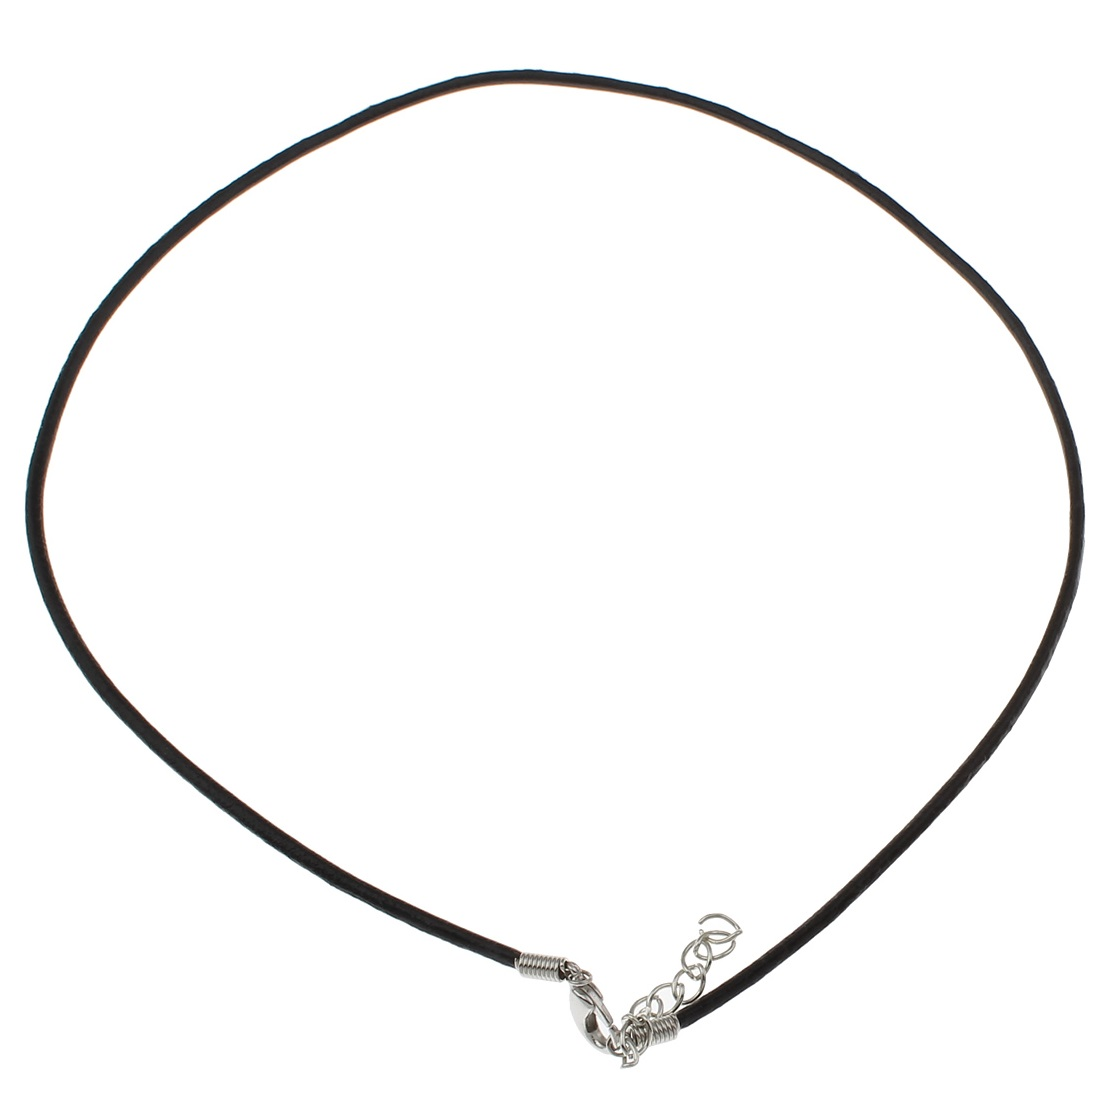 Adjustable Genuine Black Leather Necklace with Silver Tone Clasp